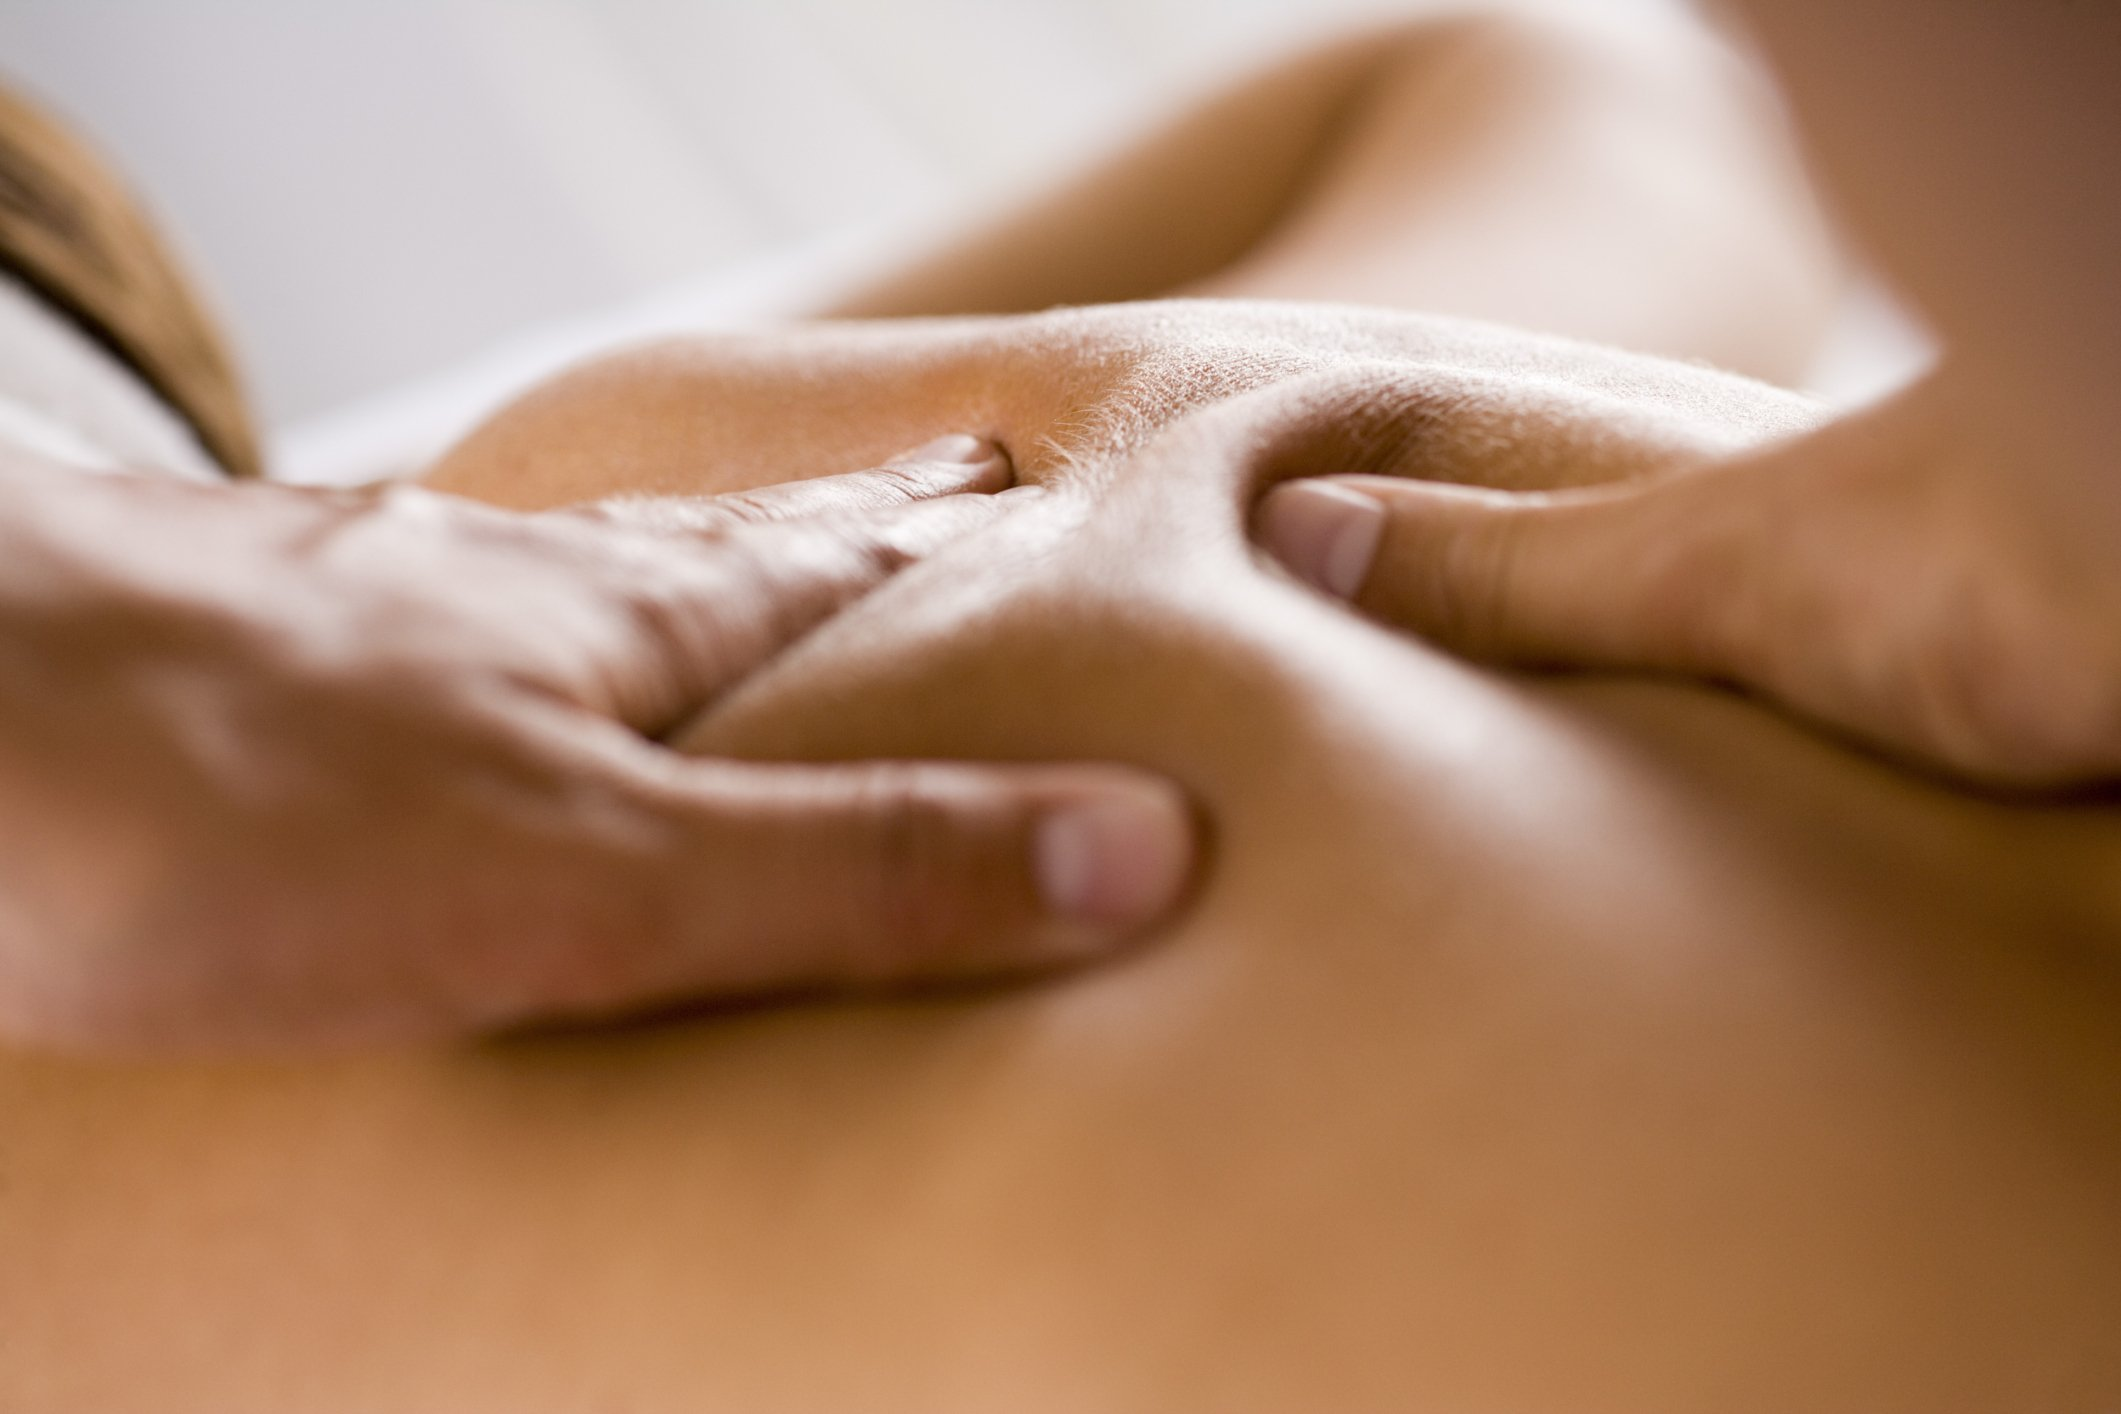 sore muscles massage hands back muscles